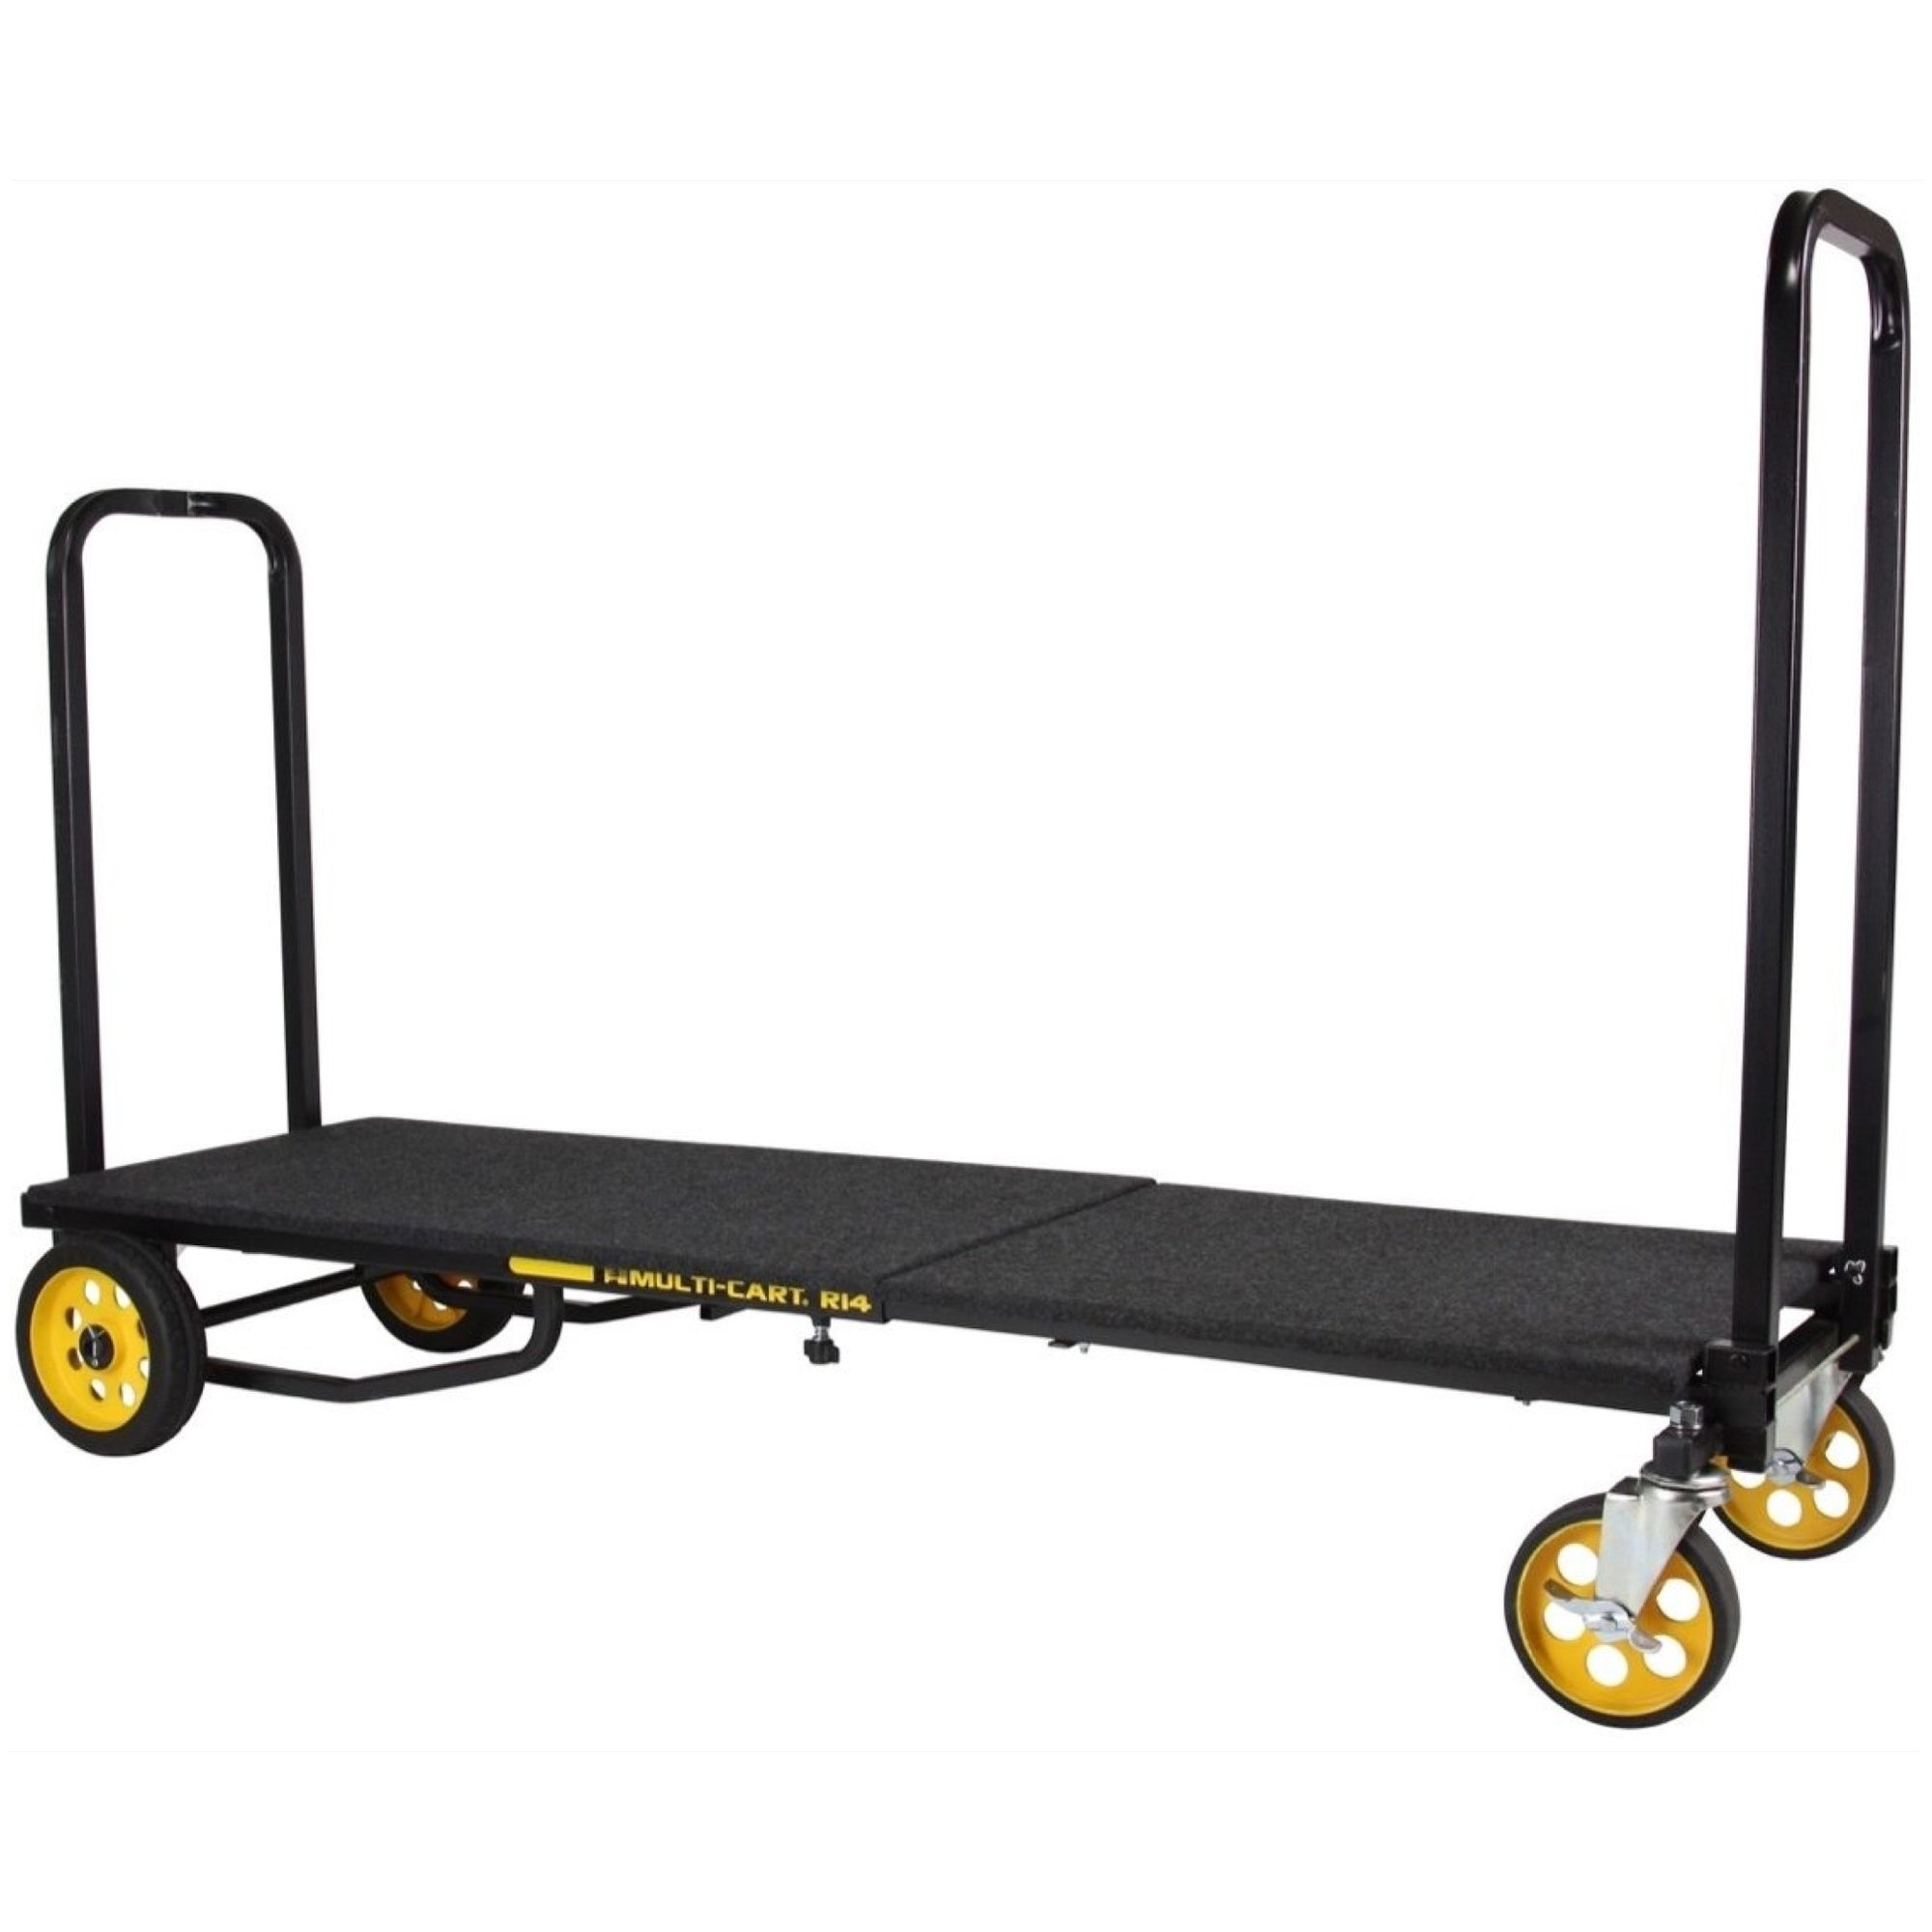 RocknRoller R14 Solid Deck for R14 R18 Multi-Carts